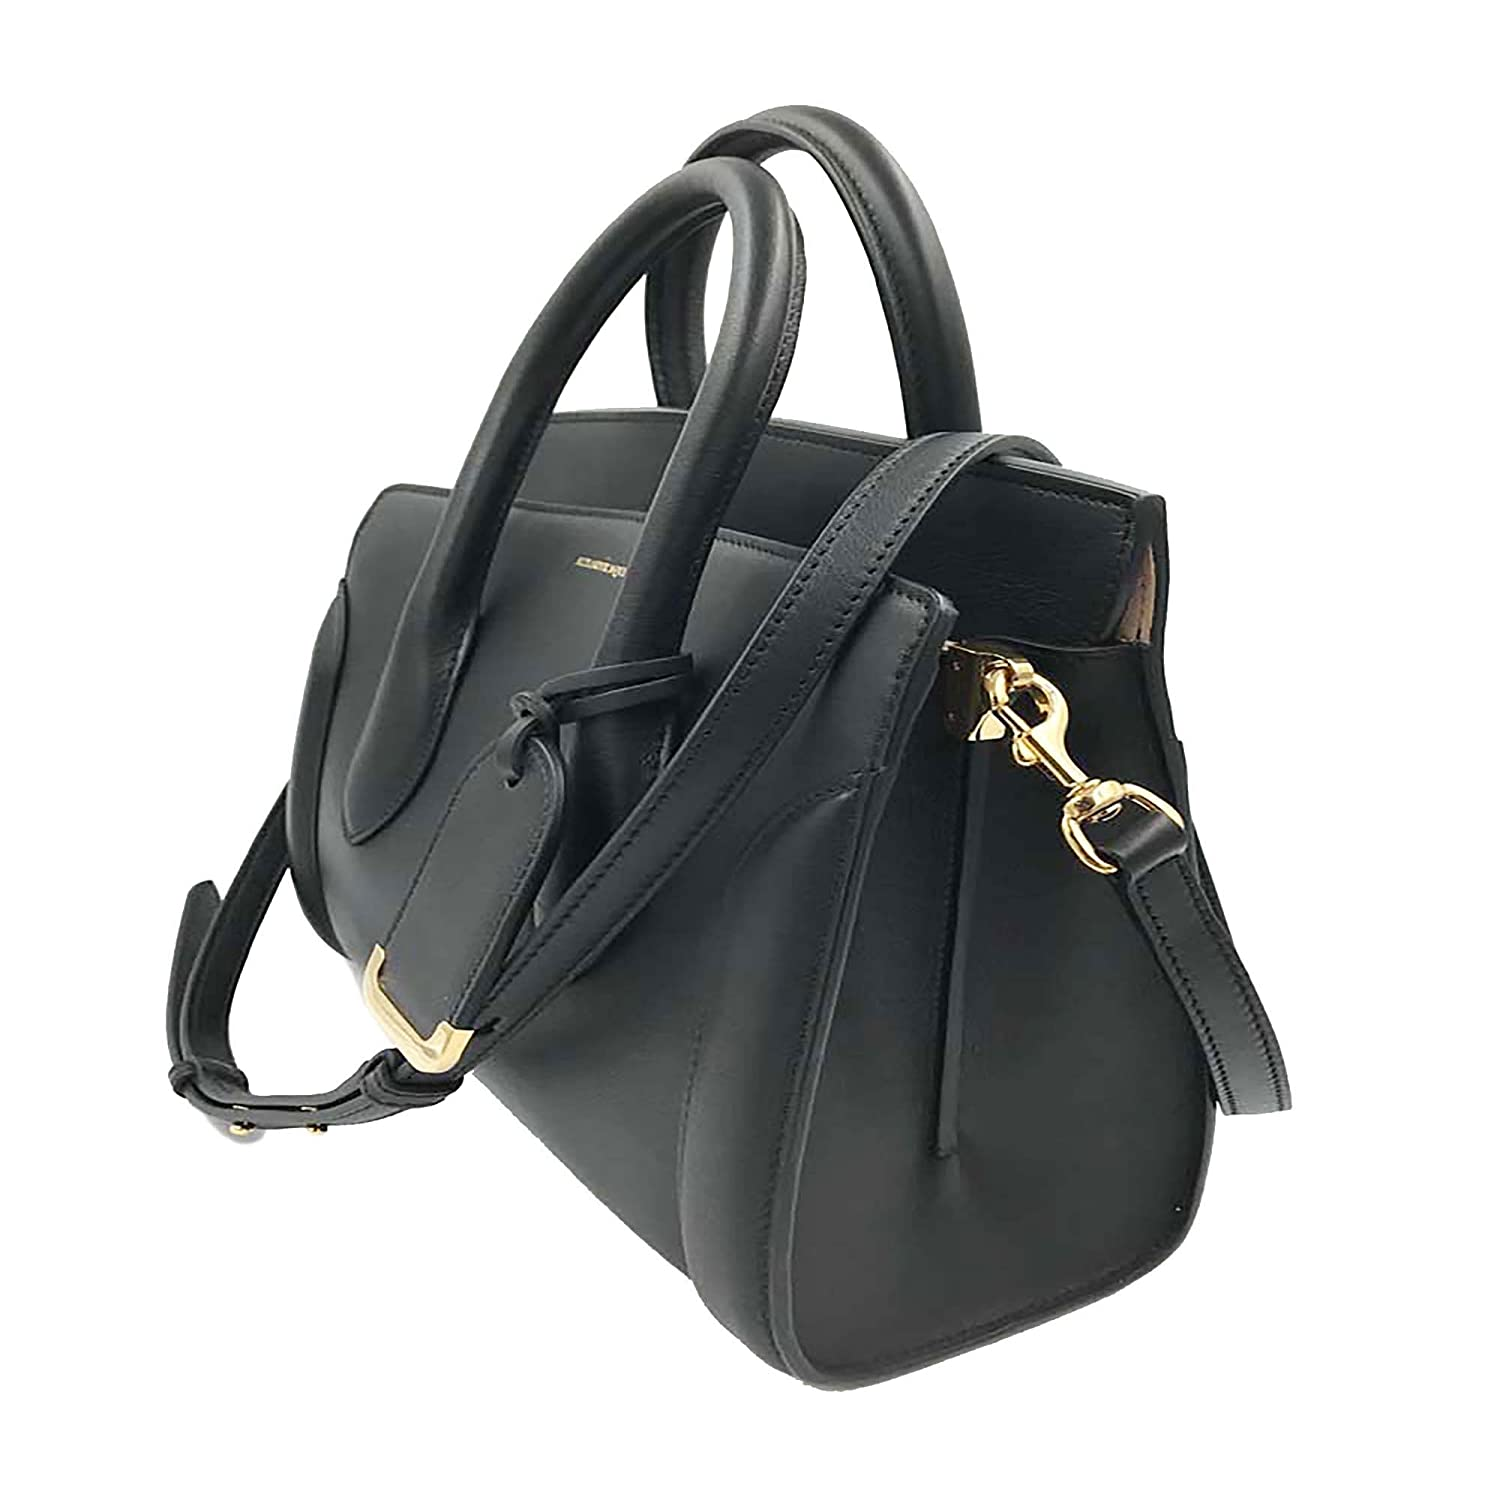 a885a37524c2 Alexander McQueen Heroine 30 Medium Leather Shoulder Bag 508859DX50M at  Amazon Women's Clothing store: